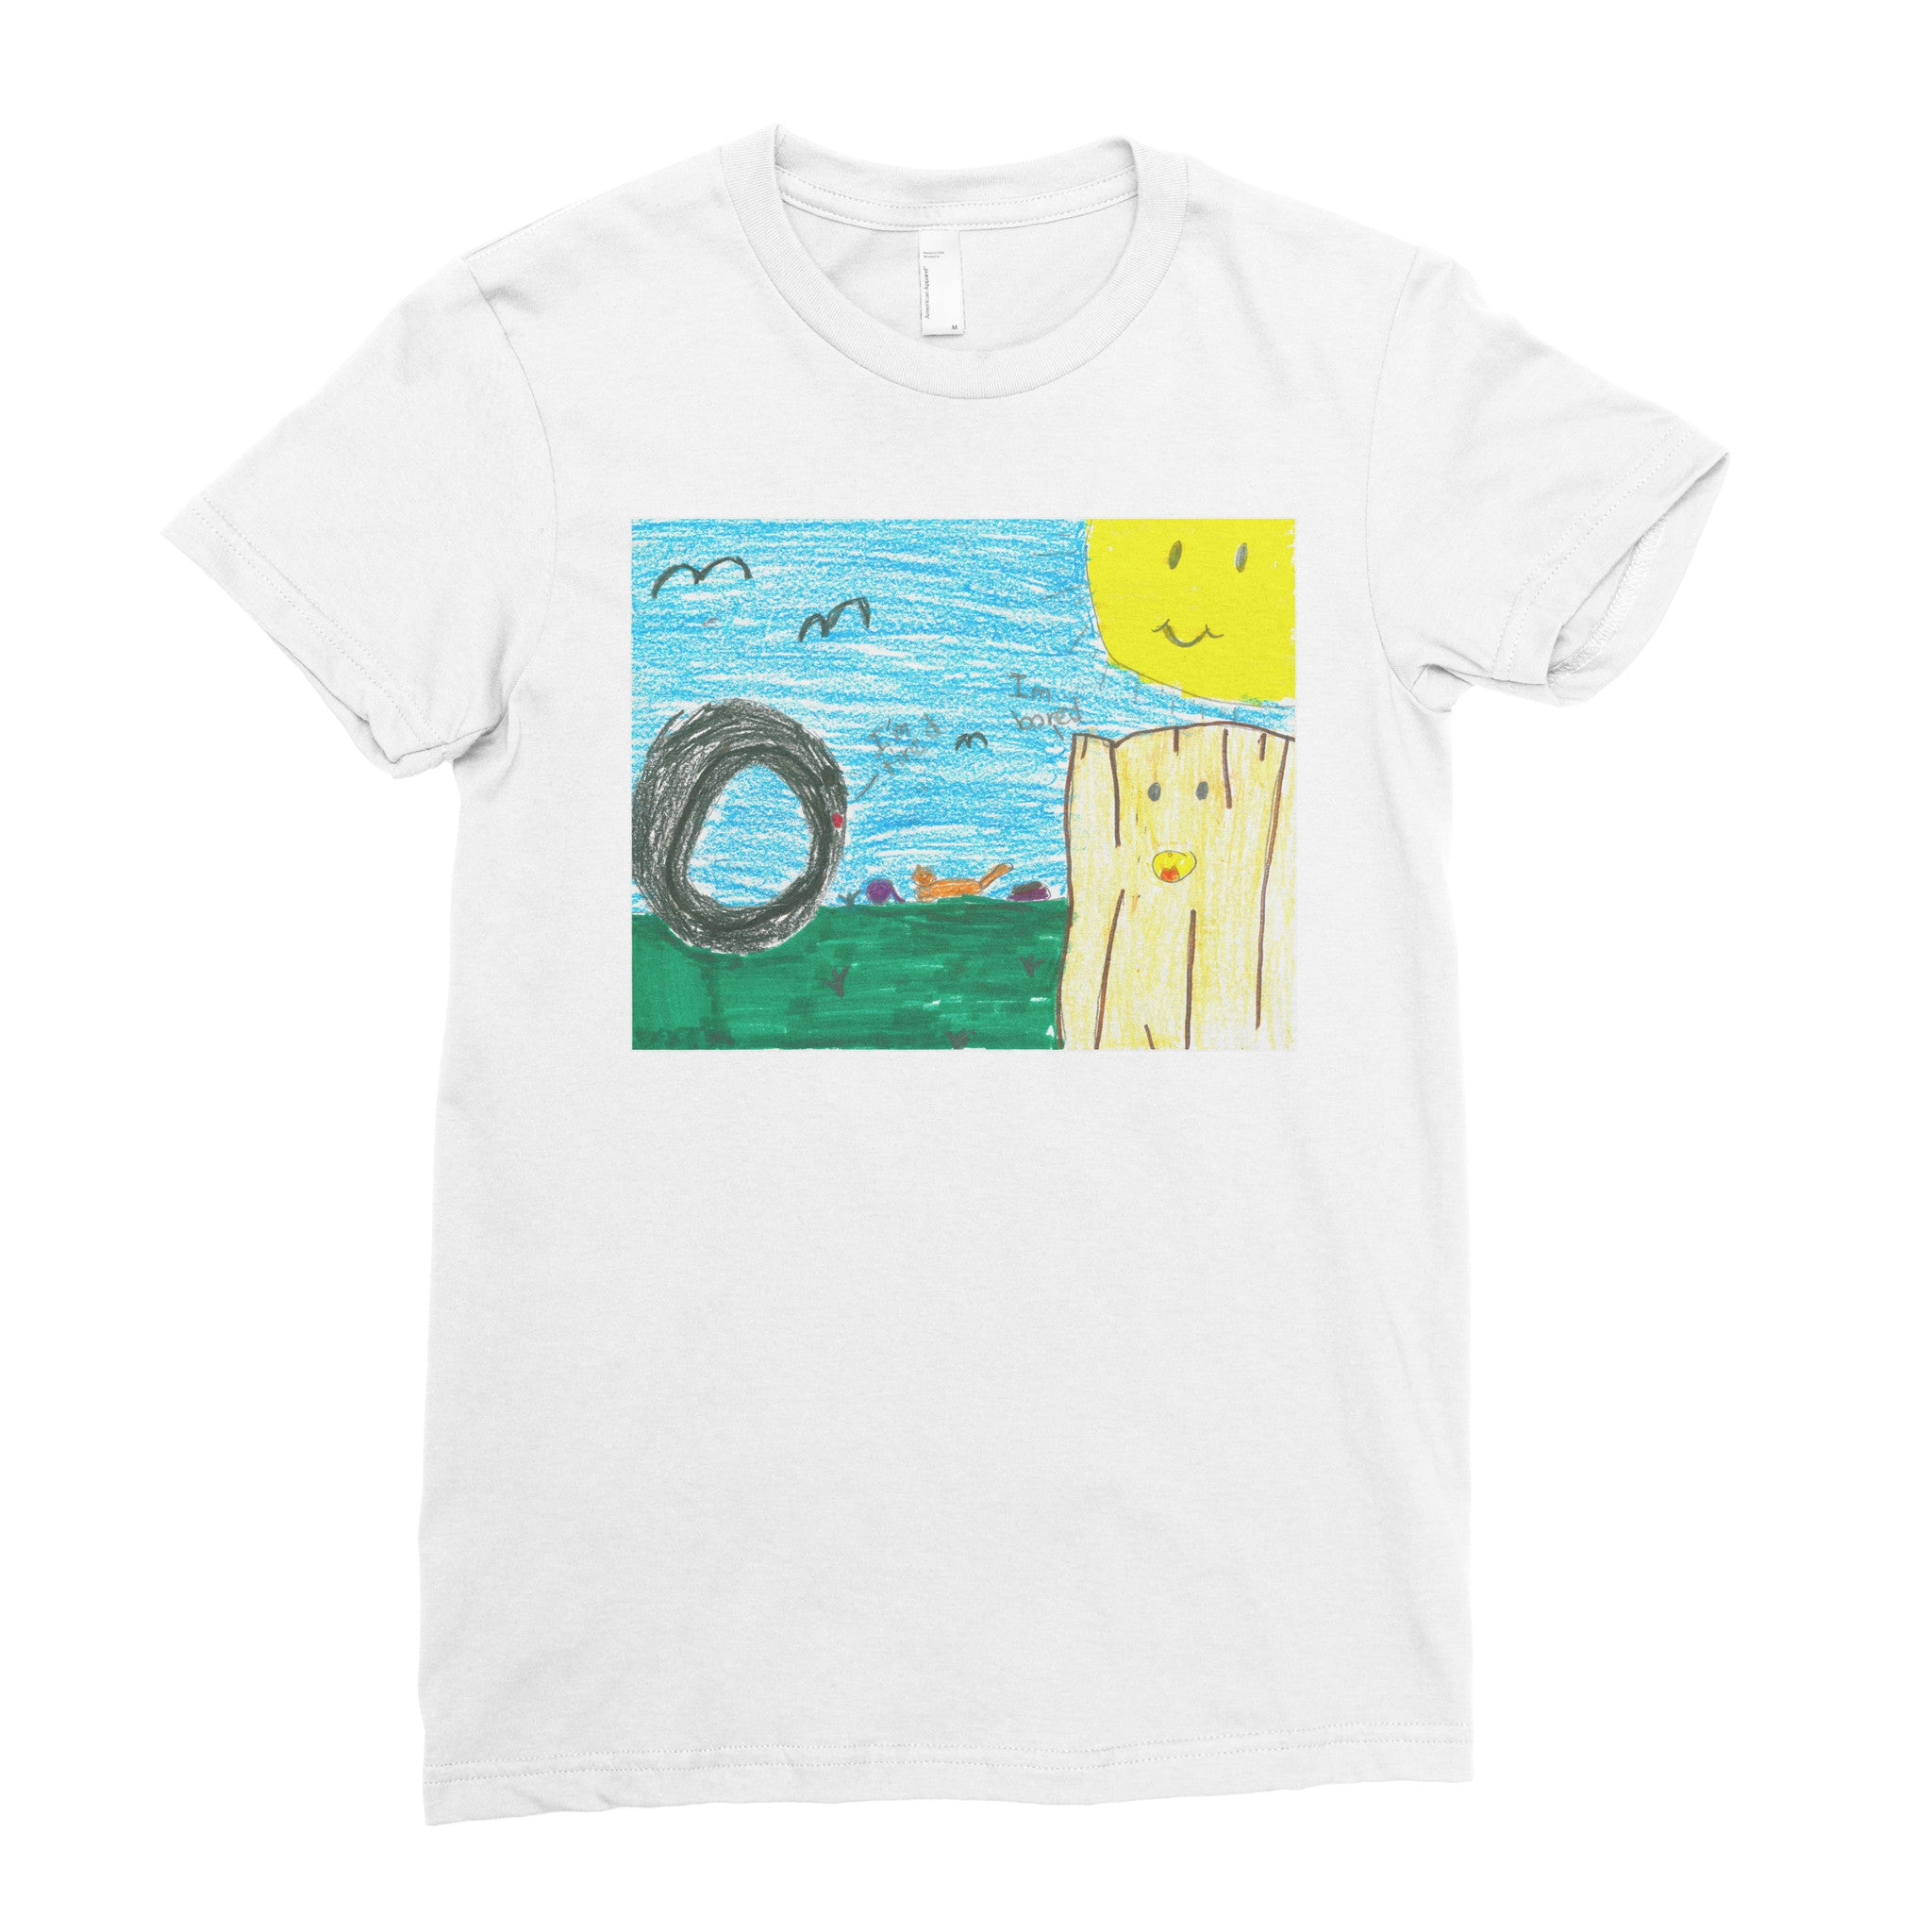 Cassidy, 3rd grade - Adult T-shirt - Rightside Shirts